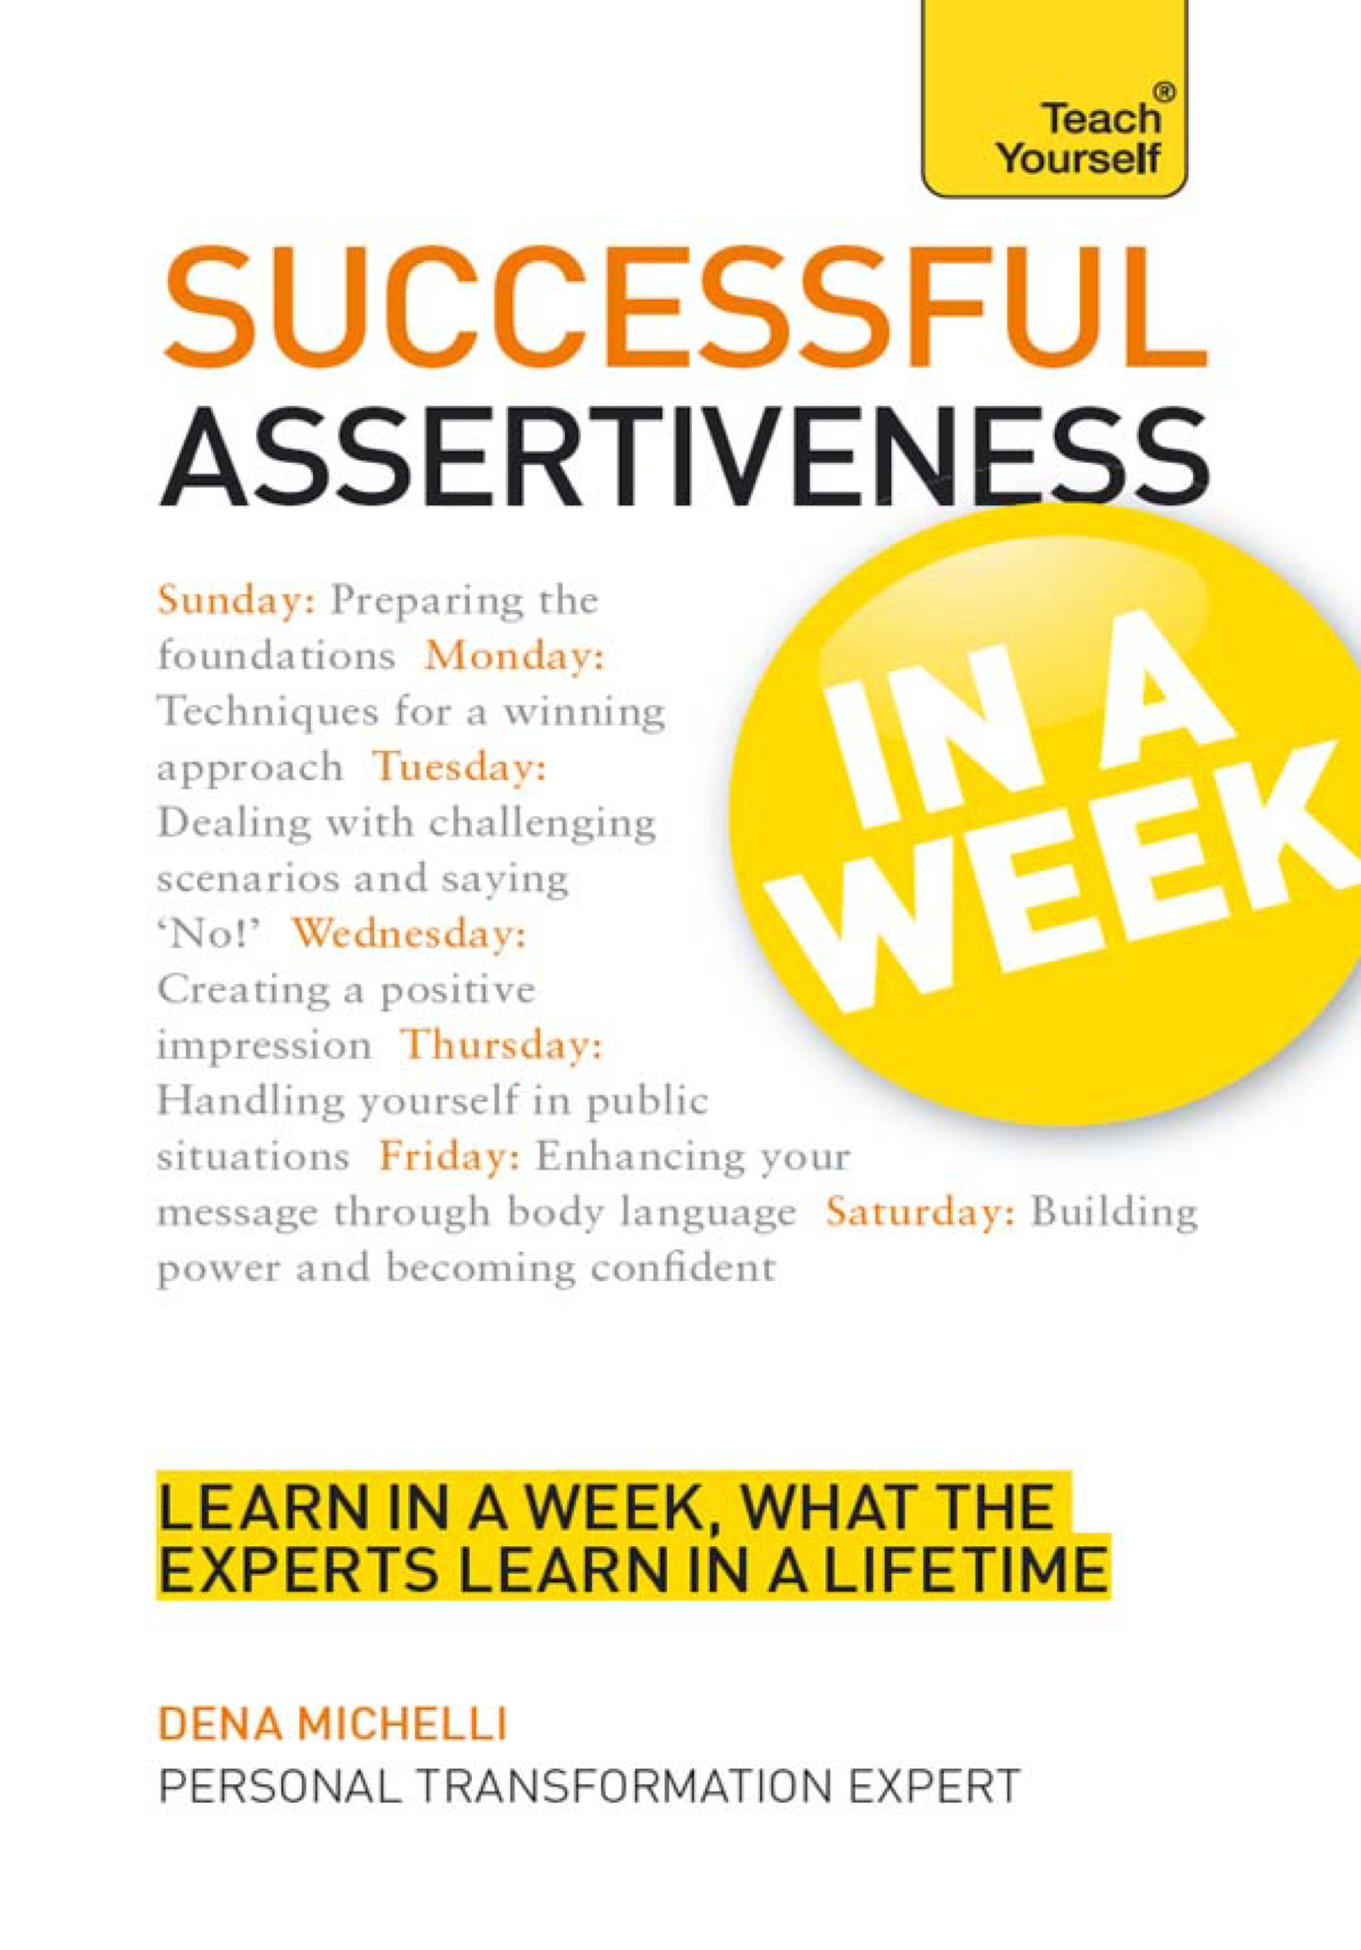 Successful Assertiveness in a Week: Teach Yourself